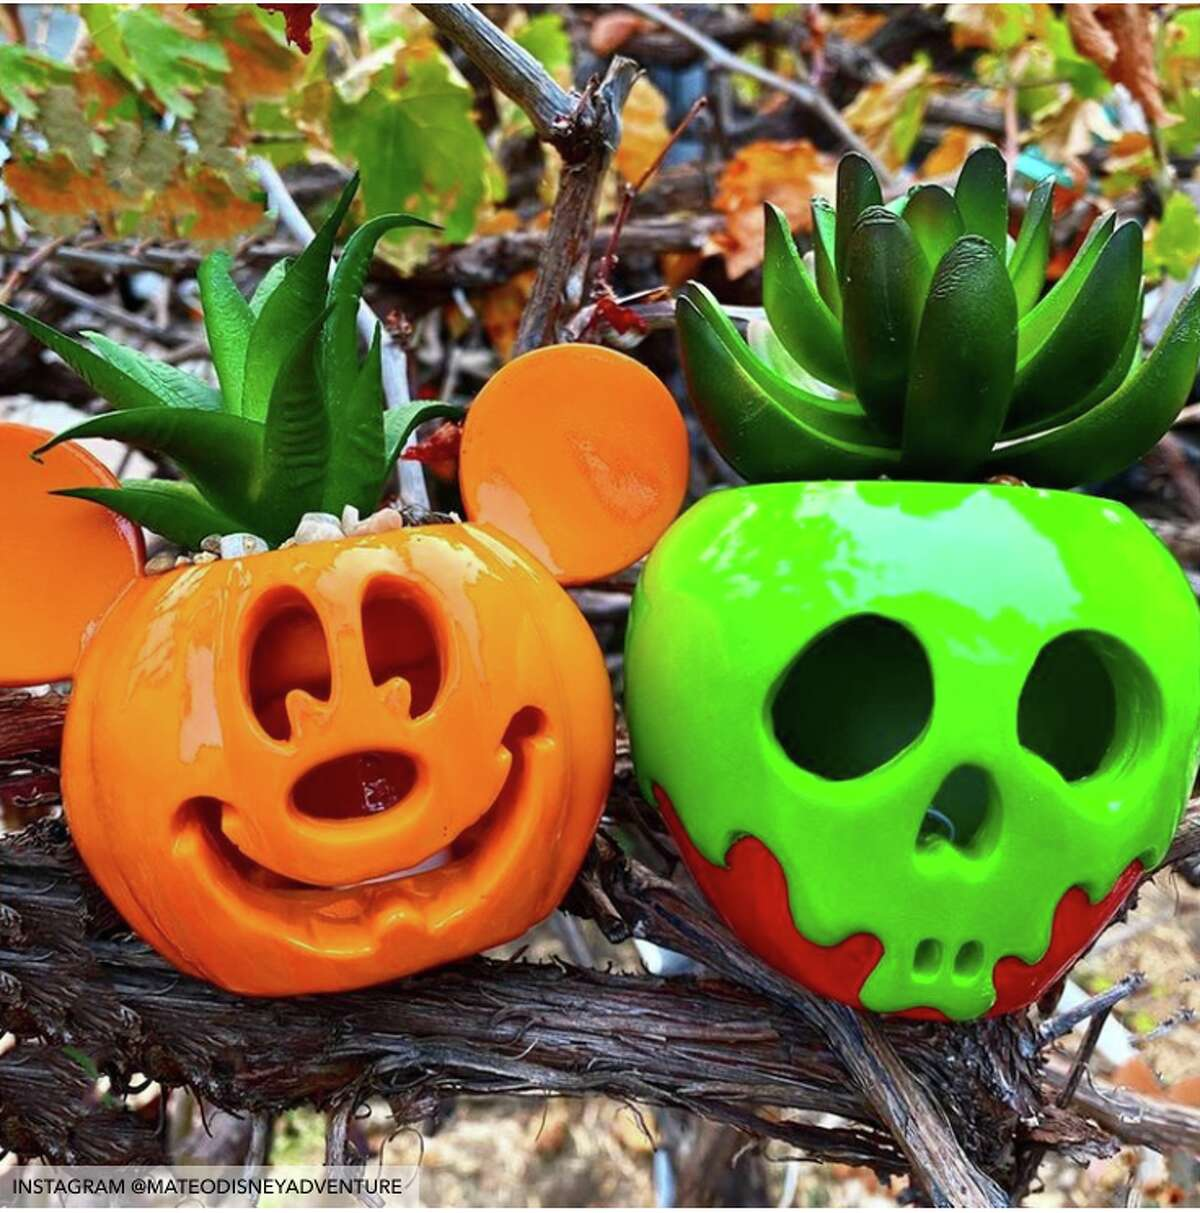 Disney succulents will add the perfect touch of cuteness to Halloween.